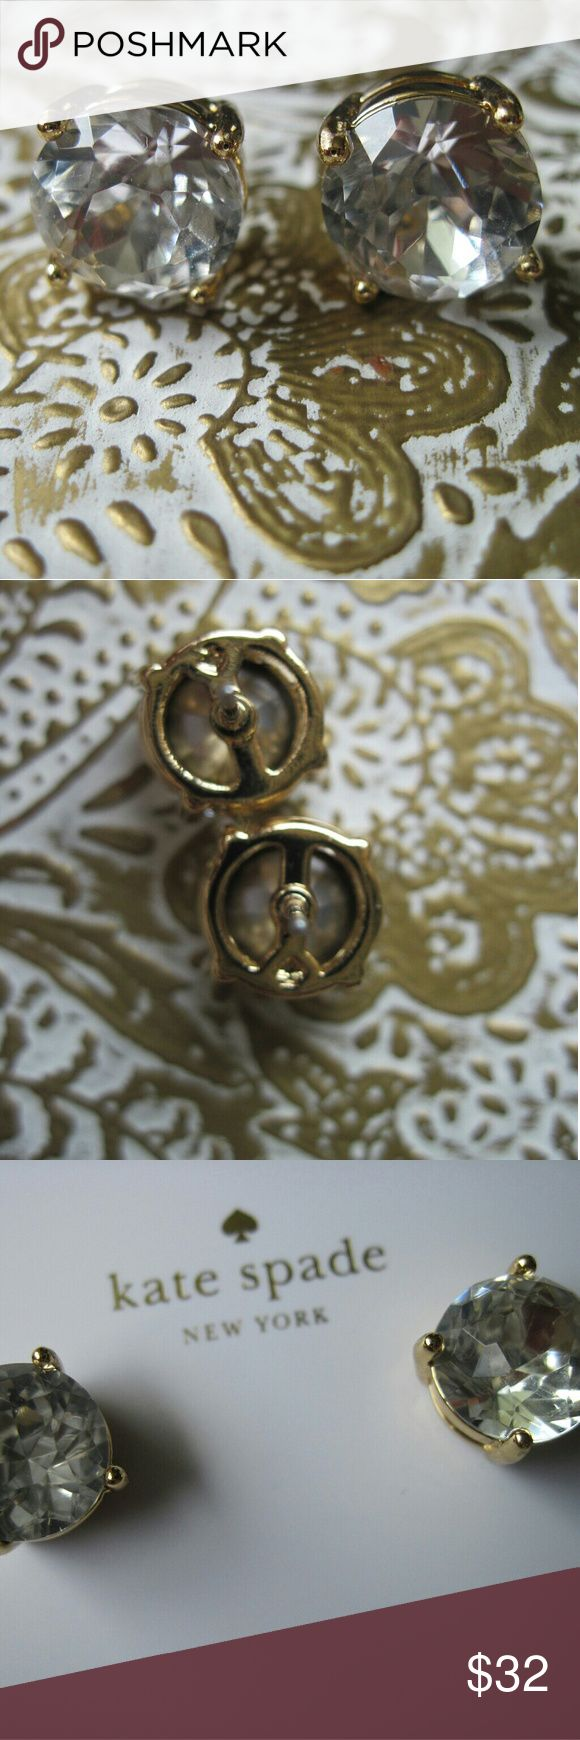 New Kate Spade Faceted Crystal Clear Gold Earrings New with tags and unworn Kate Spade faceted crystal earrings. Clear stones and gold plated with steel posts. Goes with everything! Catches the light beautifully but petite enough to not be overstated. On the earring card. kate spade Jewelry Earrings